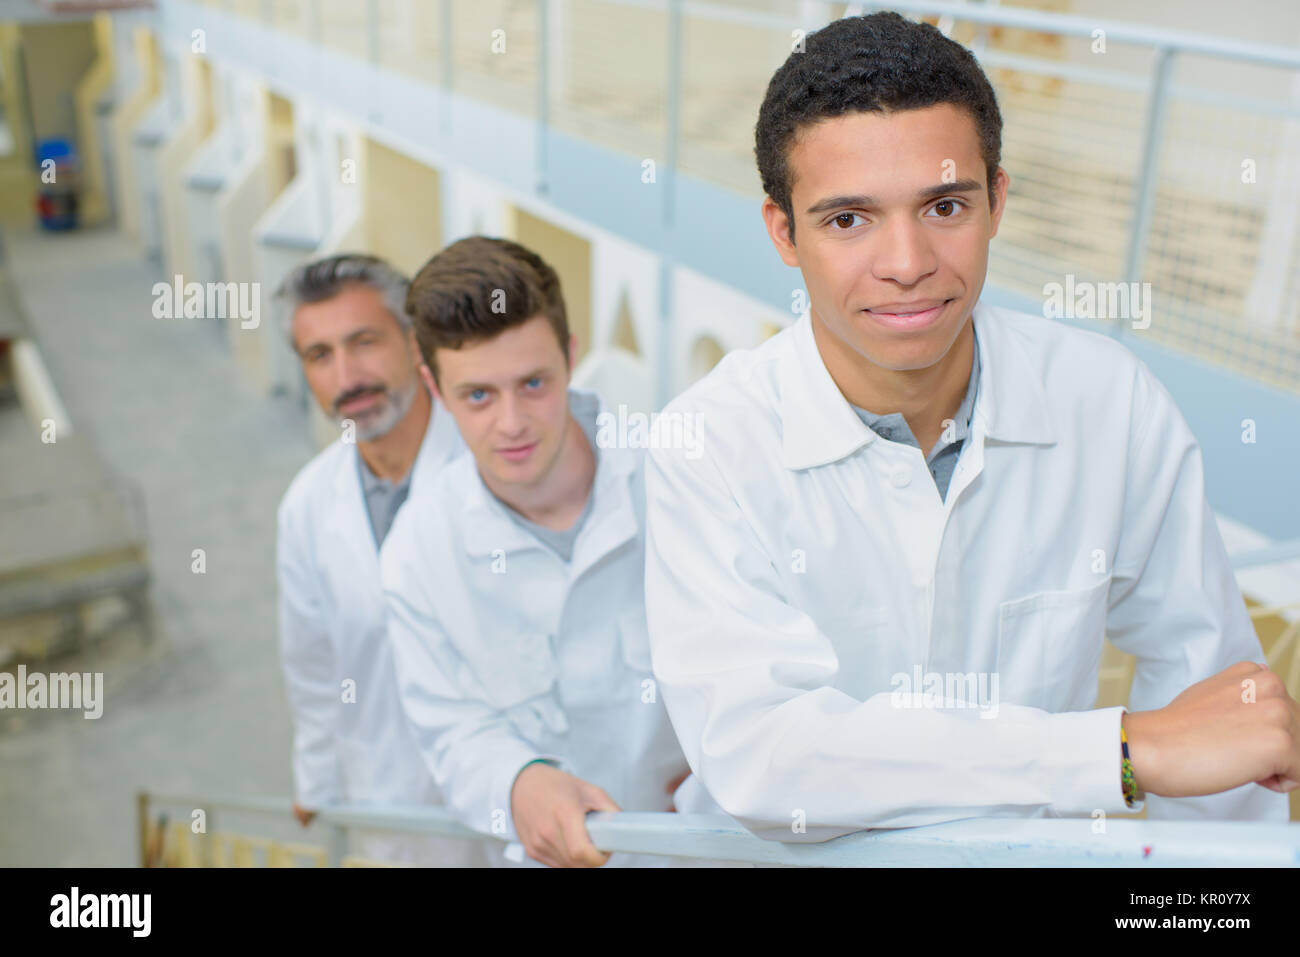 three men in the stairs - Stock Image